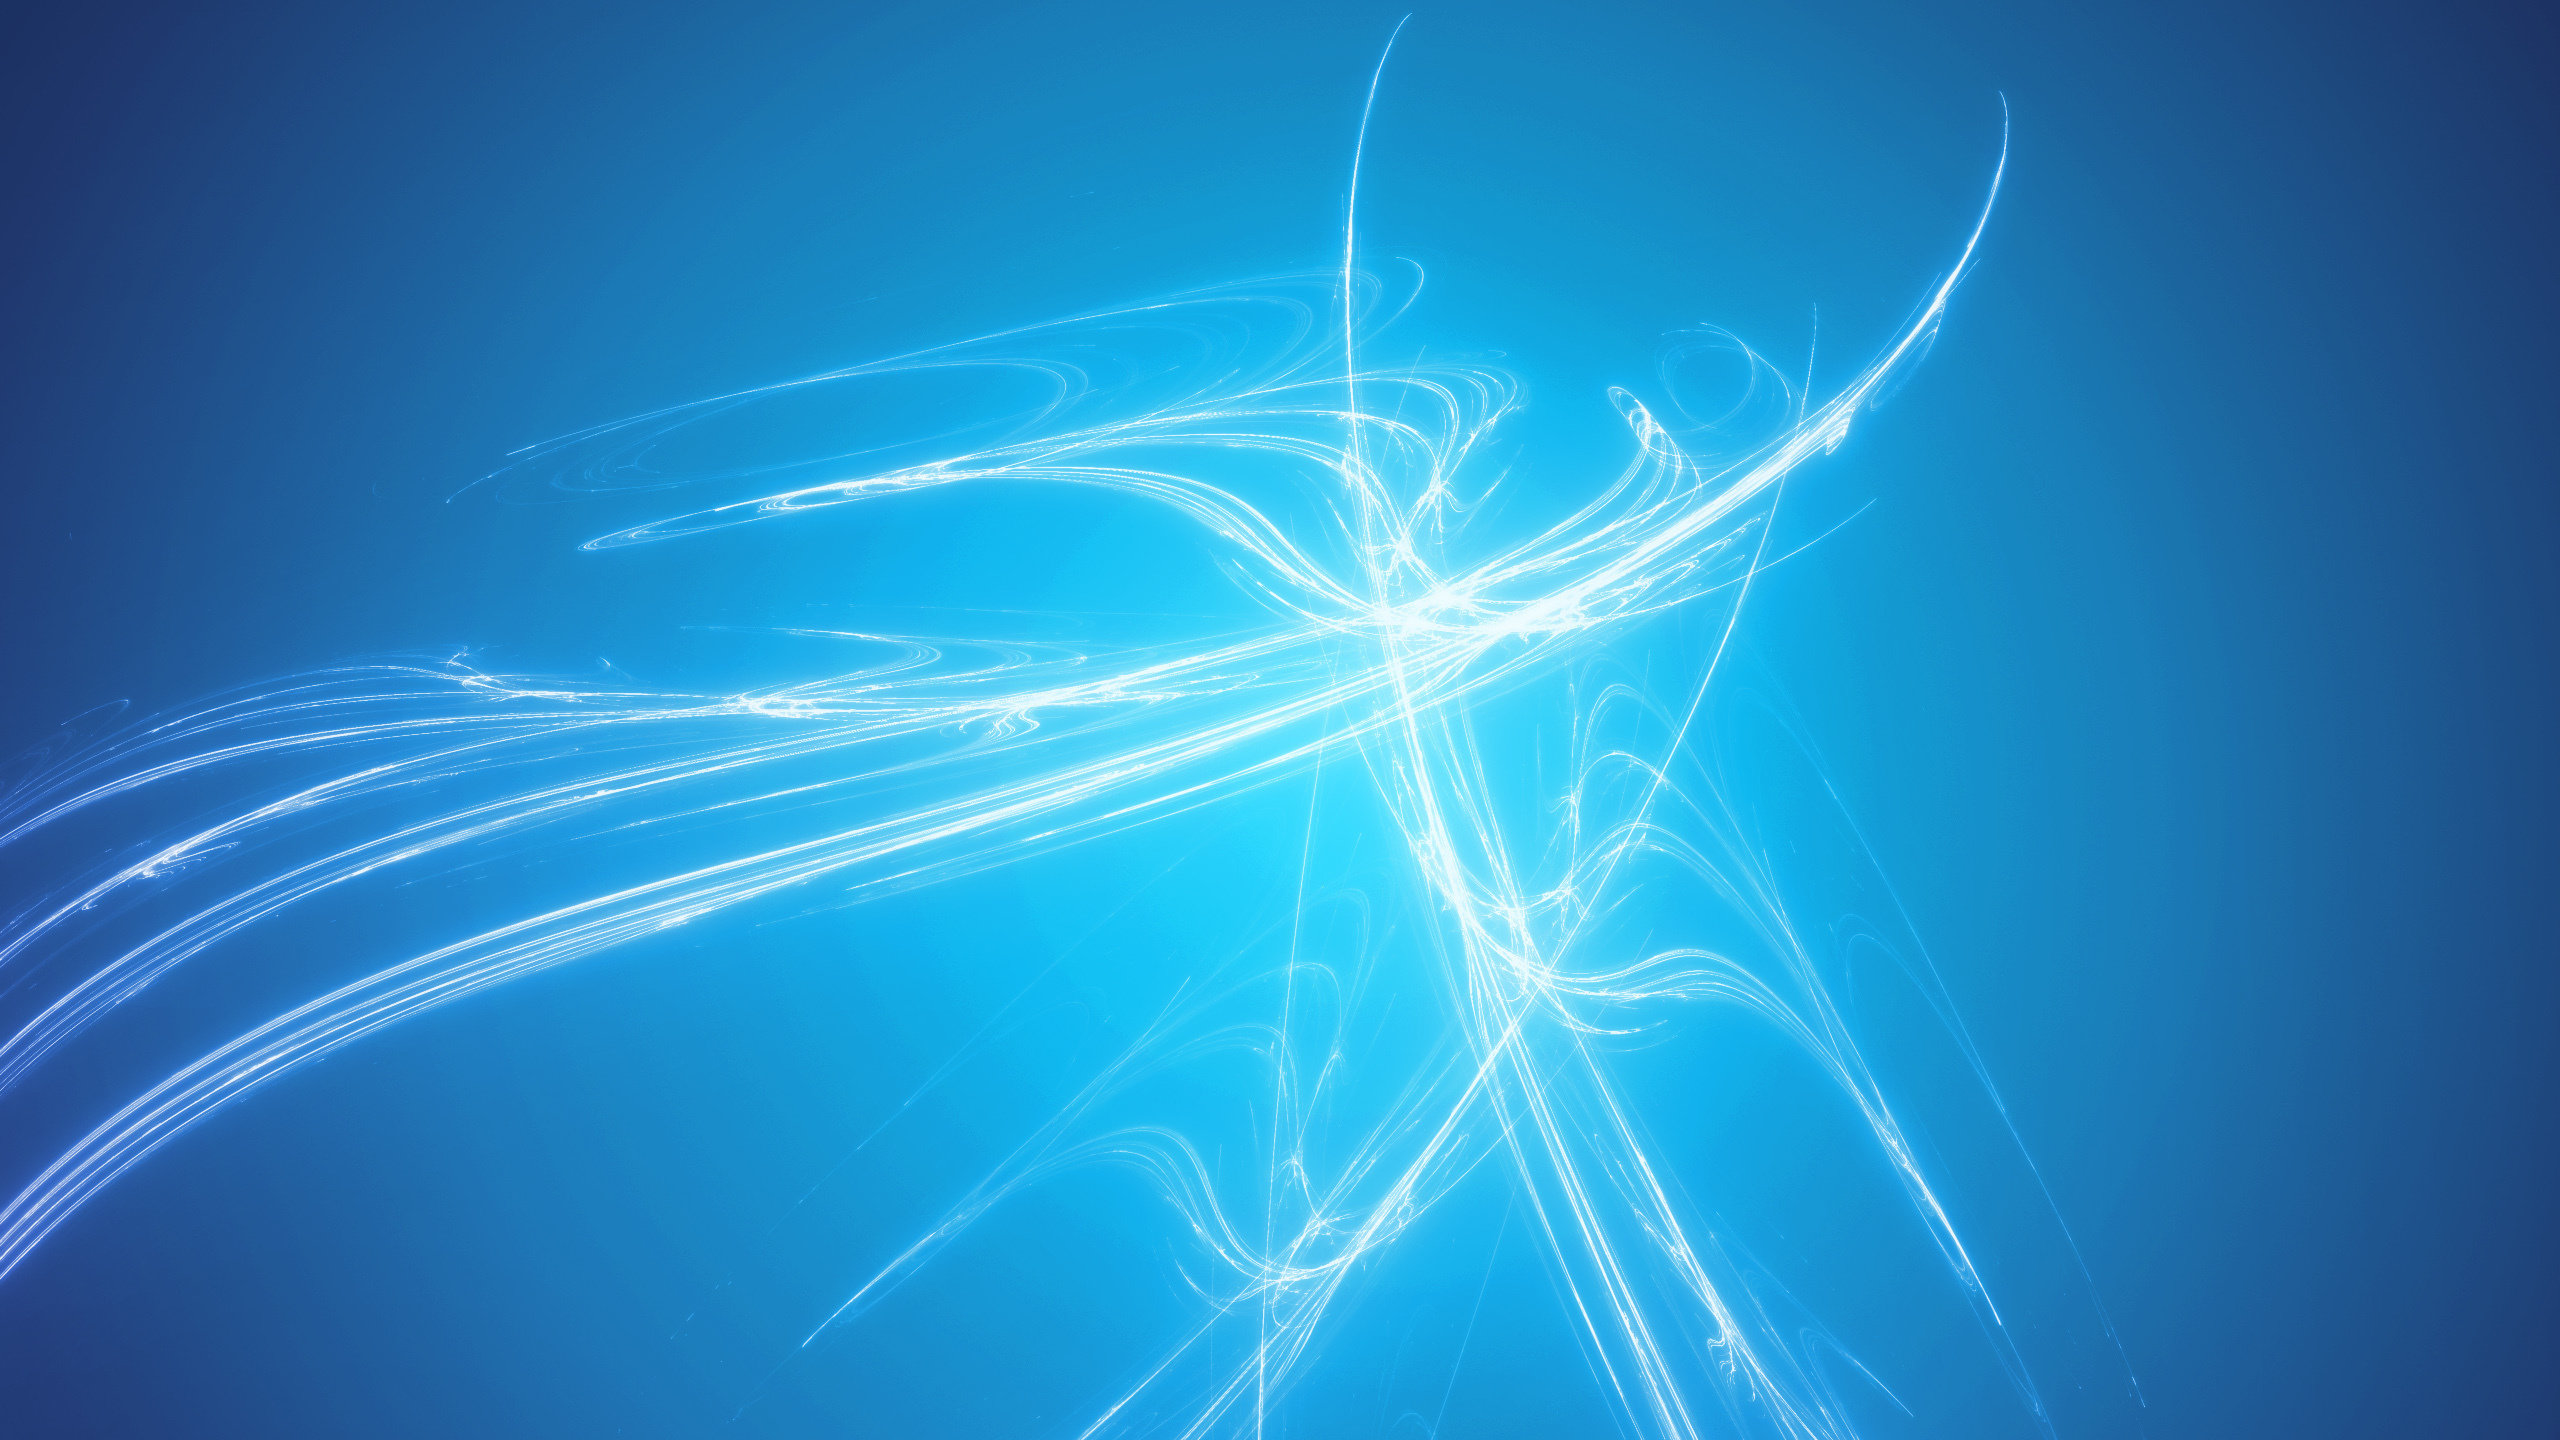 Free download Blue background ID:294180 hd 2560x1440 for PC